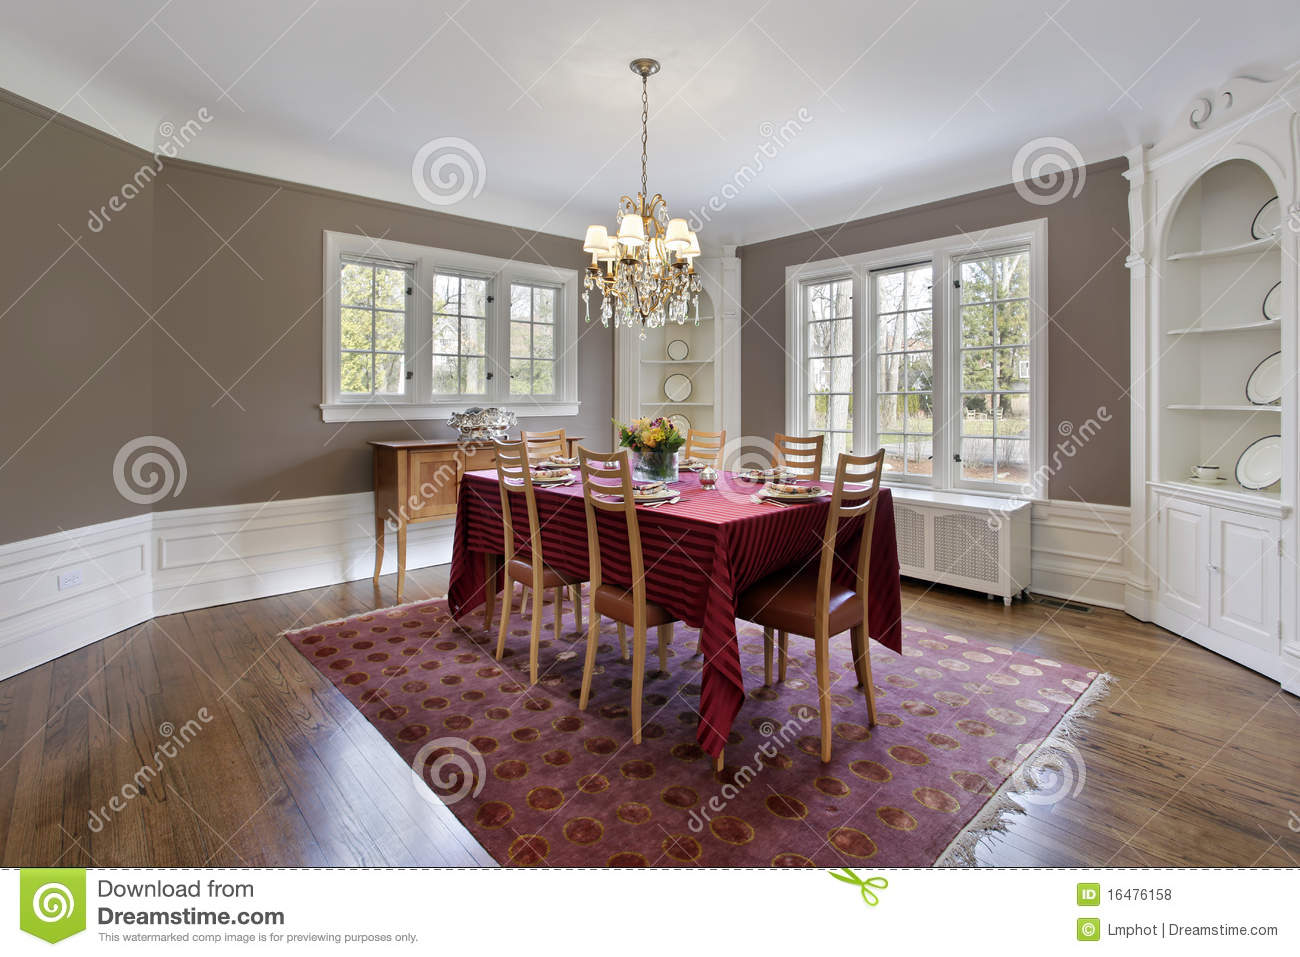 Dining Room With Builtin Cabinets Royalty Free Stock Photos - Dining room built in cabinets